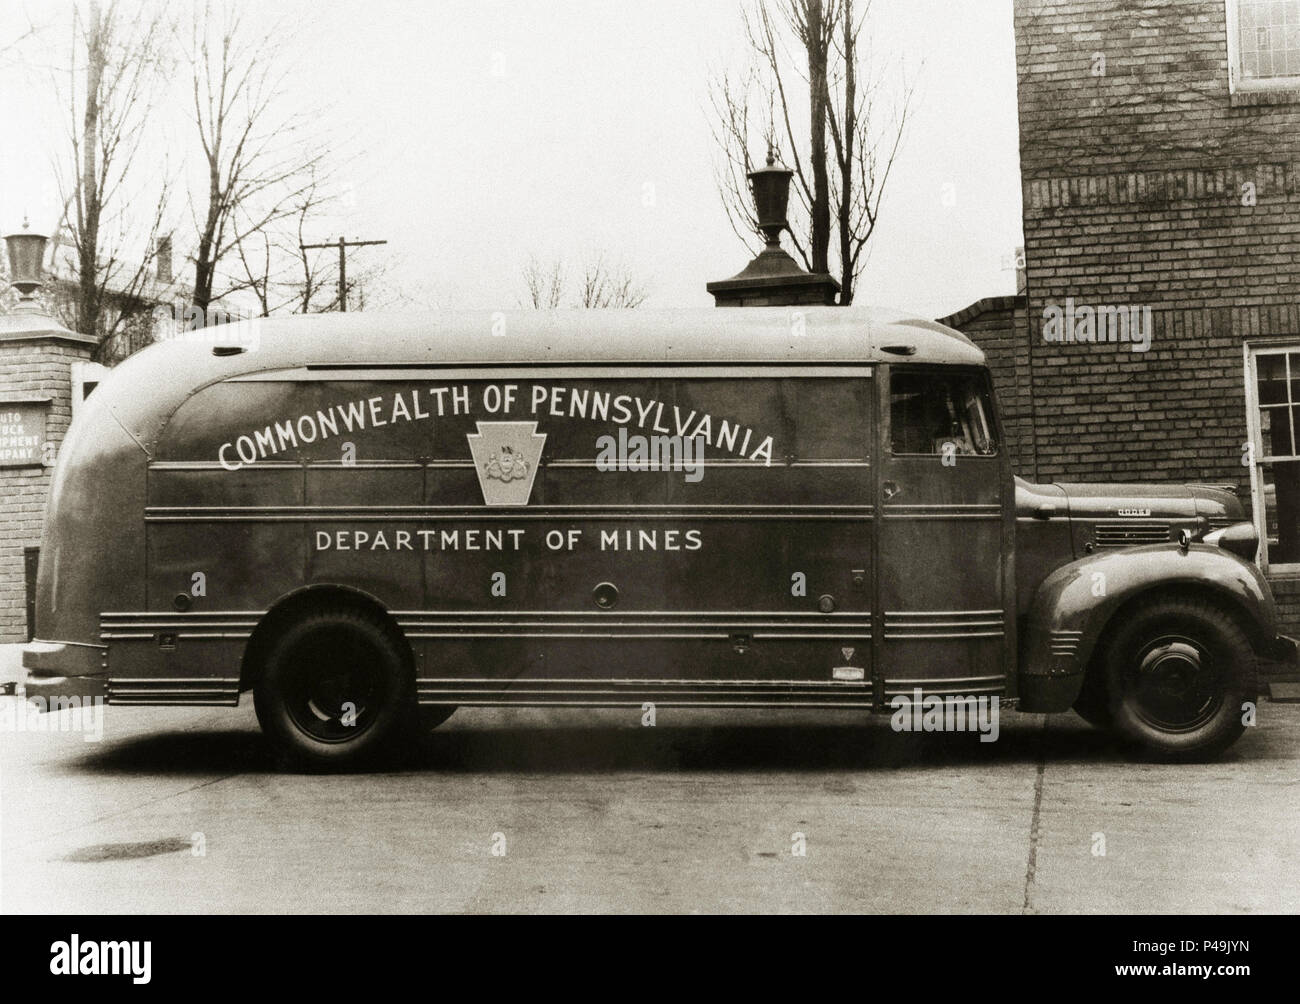 """The Commonwealth of Pennsylvania USA Mine Rescue Truck of 1947,equipped with the necessary breathing apparatus, gas masks, first-aid supplies, analytical apparatus and such other chemical and scientific instruments commonly used and necessary in the work of first aid and mine rescue. """"Pennsylvania Anthracite Coal Mine Act."""" Pennsylvania was the largest producer of Anthracite coal during the Industrial revolution in the United States. Particularly  around the Wilkes Barre and Scranton areas, Luzerne and Lackawanna counties of North Eastern Pennsylvania. Mine rescue was always in demand. Stock Photo"""